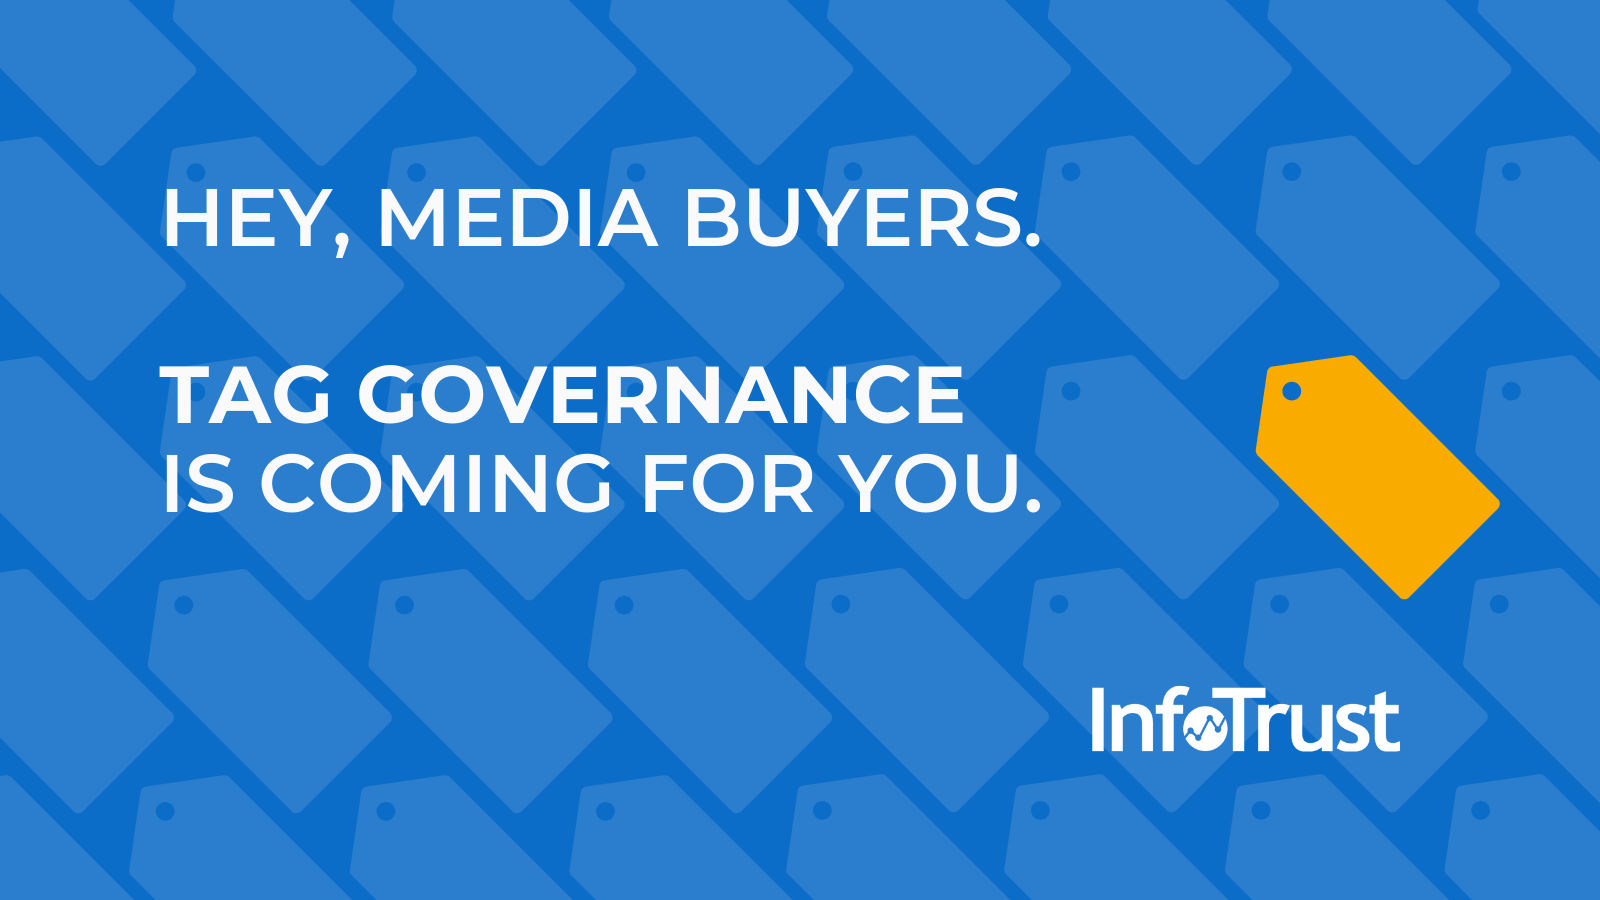 Hey, Media Buyers — Tag Governance Is Coming For You